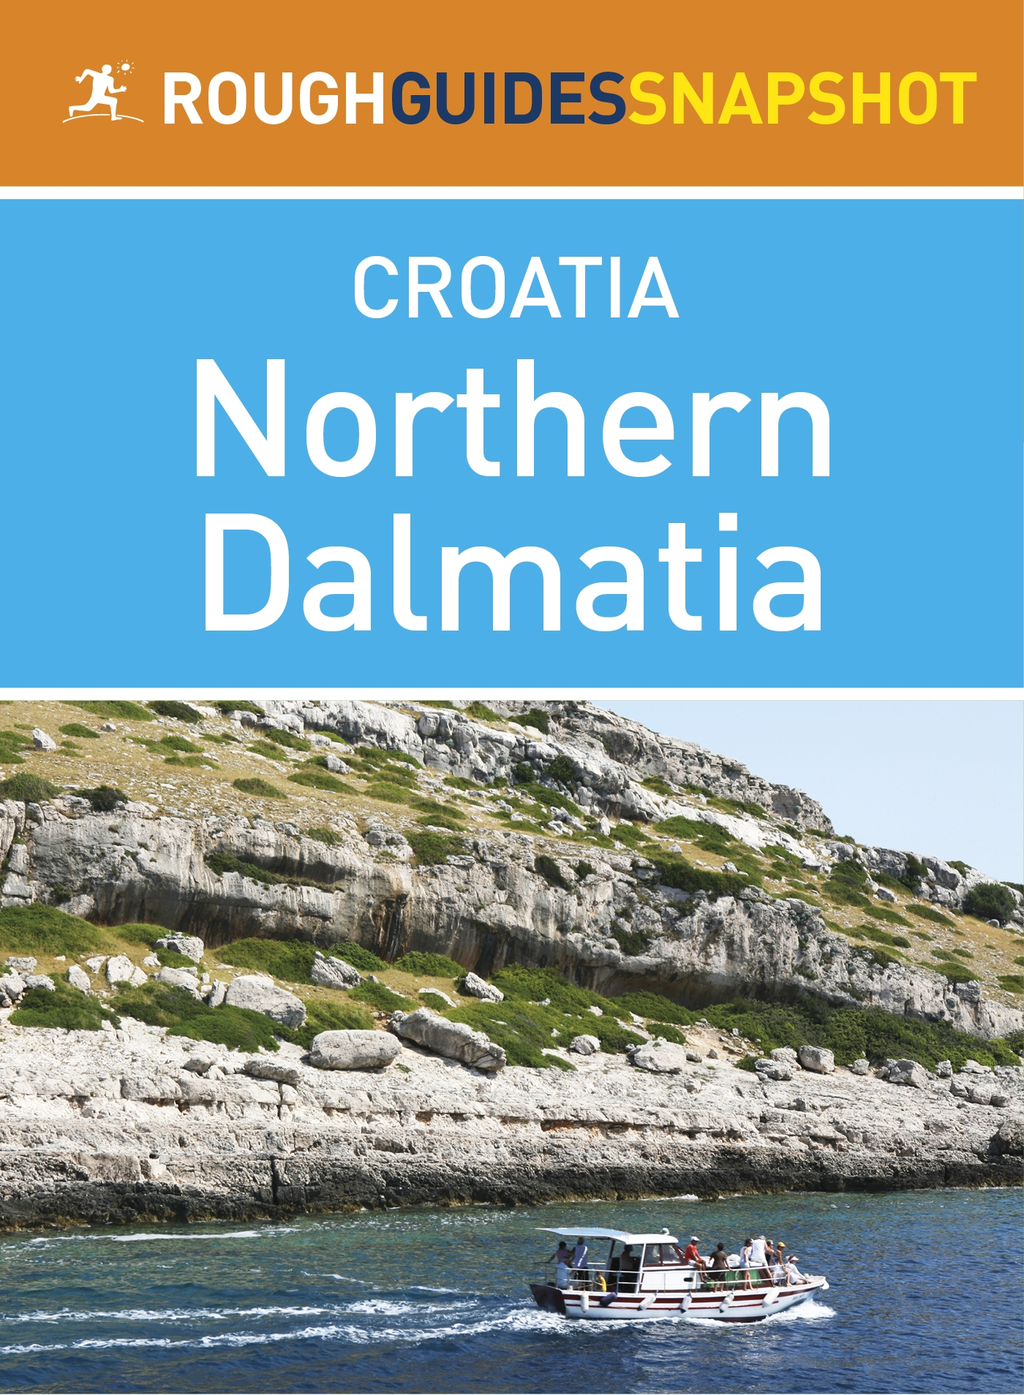 Northern Dalmatia Rough Guides Snapshot Croatia (includes Zadar, Nin, the Zadar archipelago, Murter, the Kornati islands, Šibenik and Krka National Park)